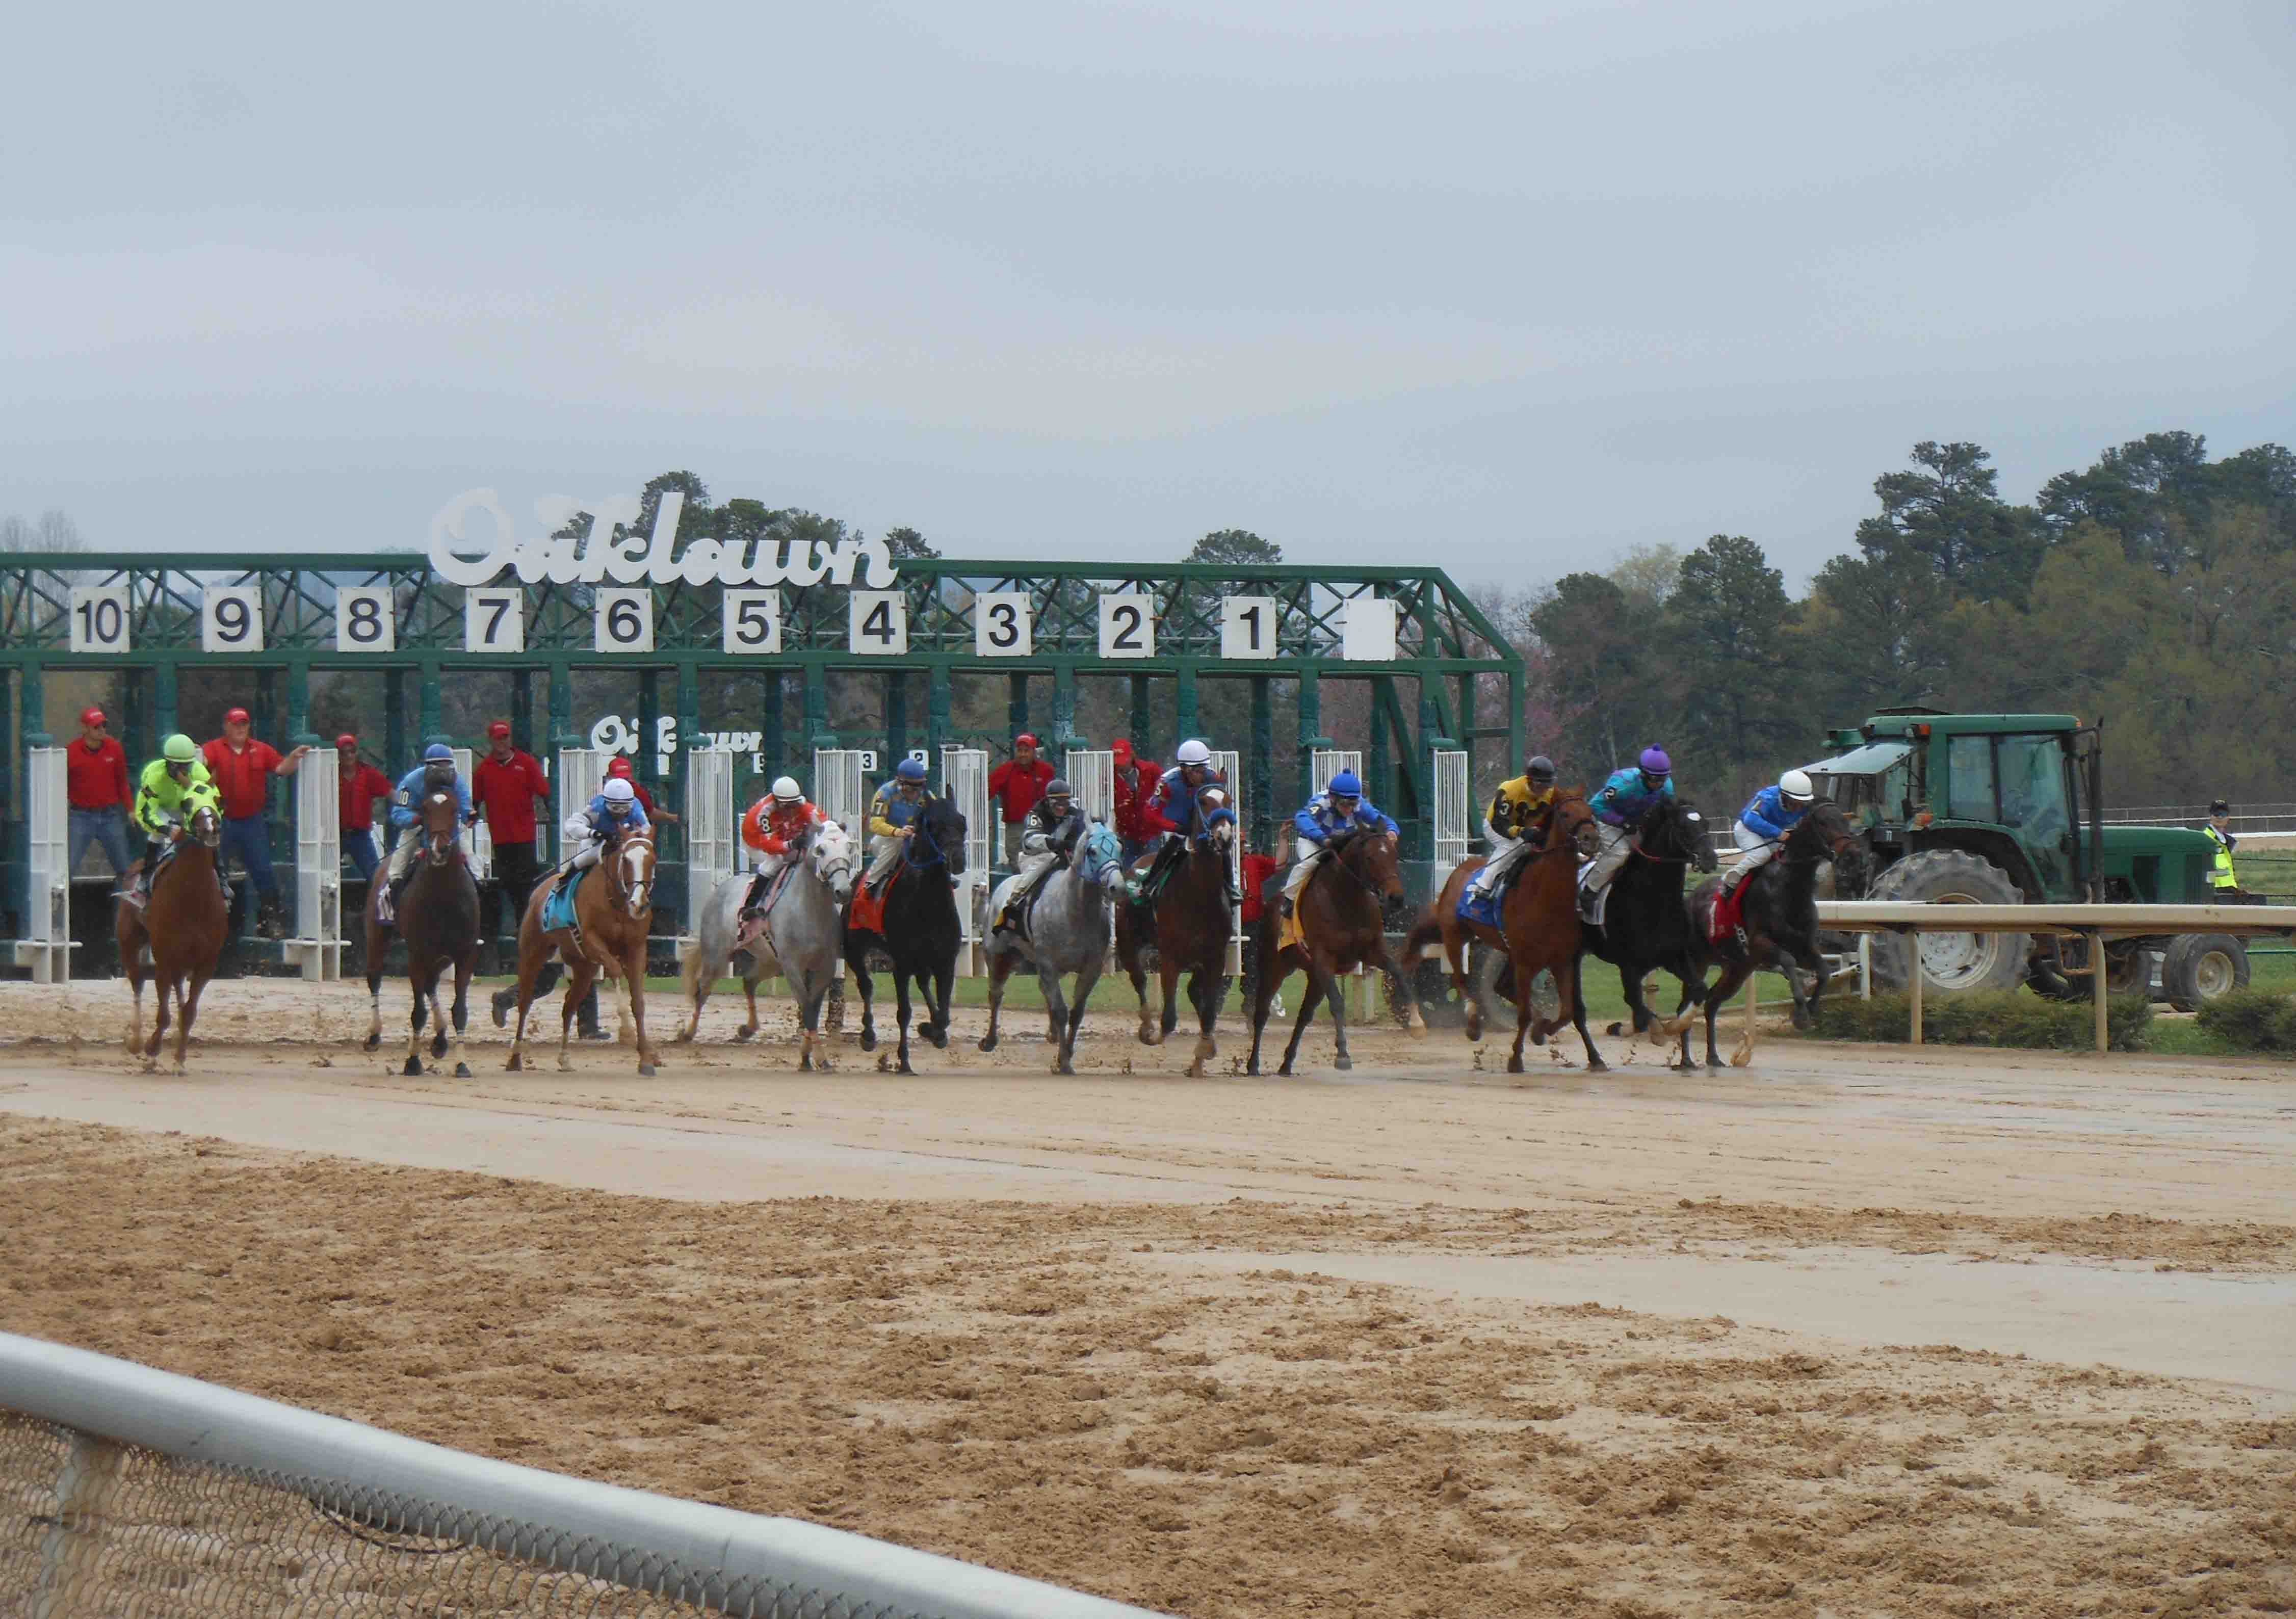 Oaklawn Race Track